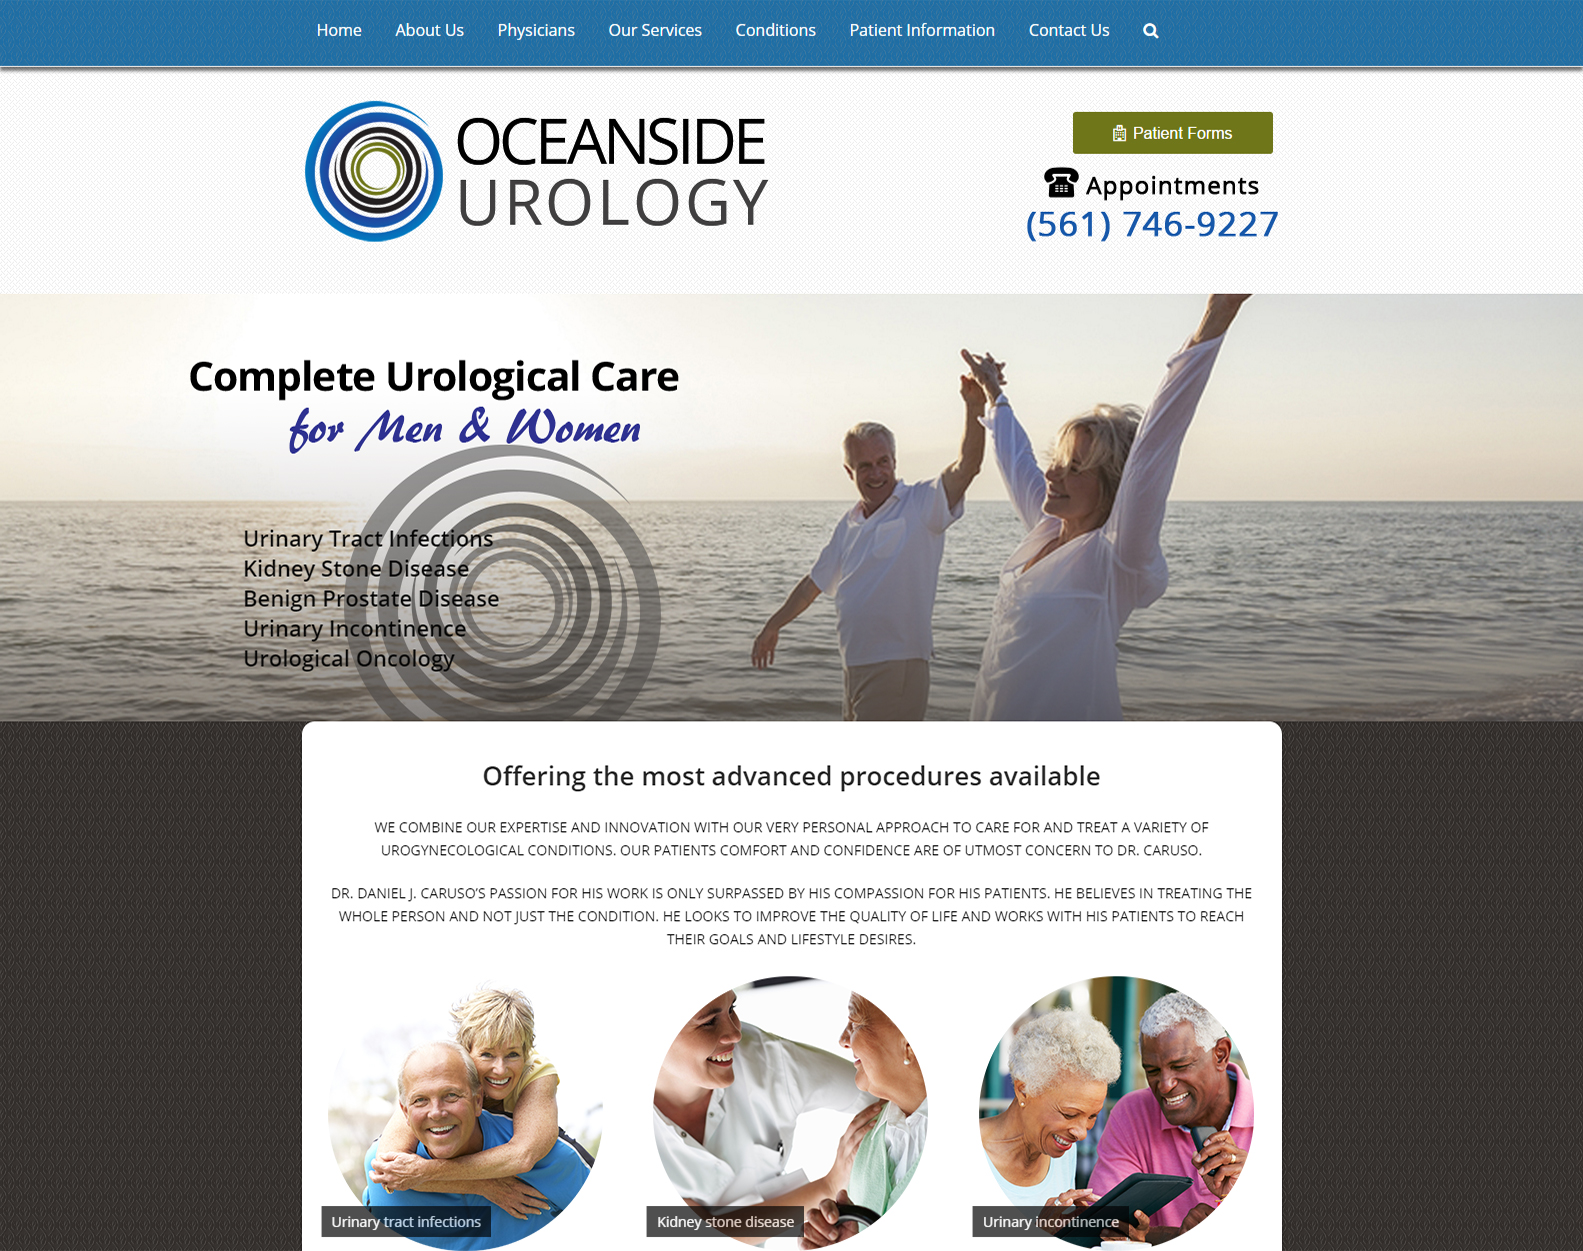 Oceanside Urology